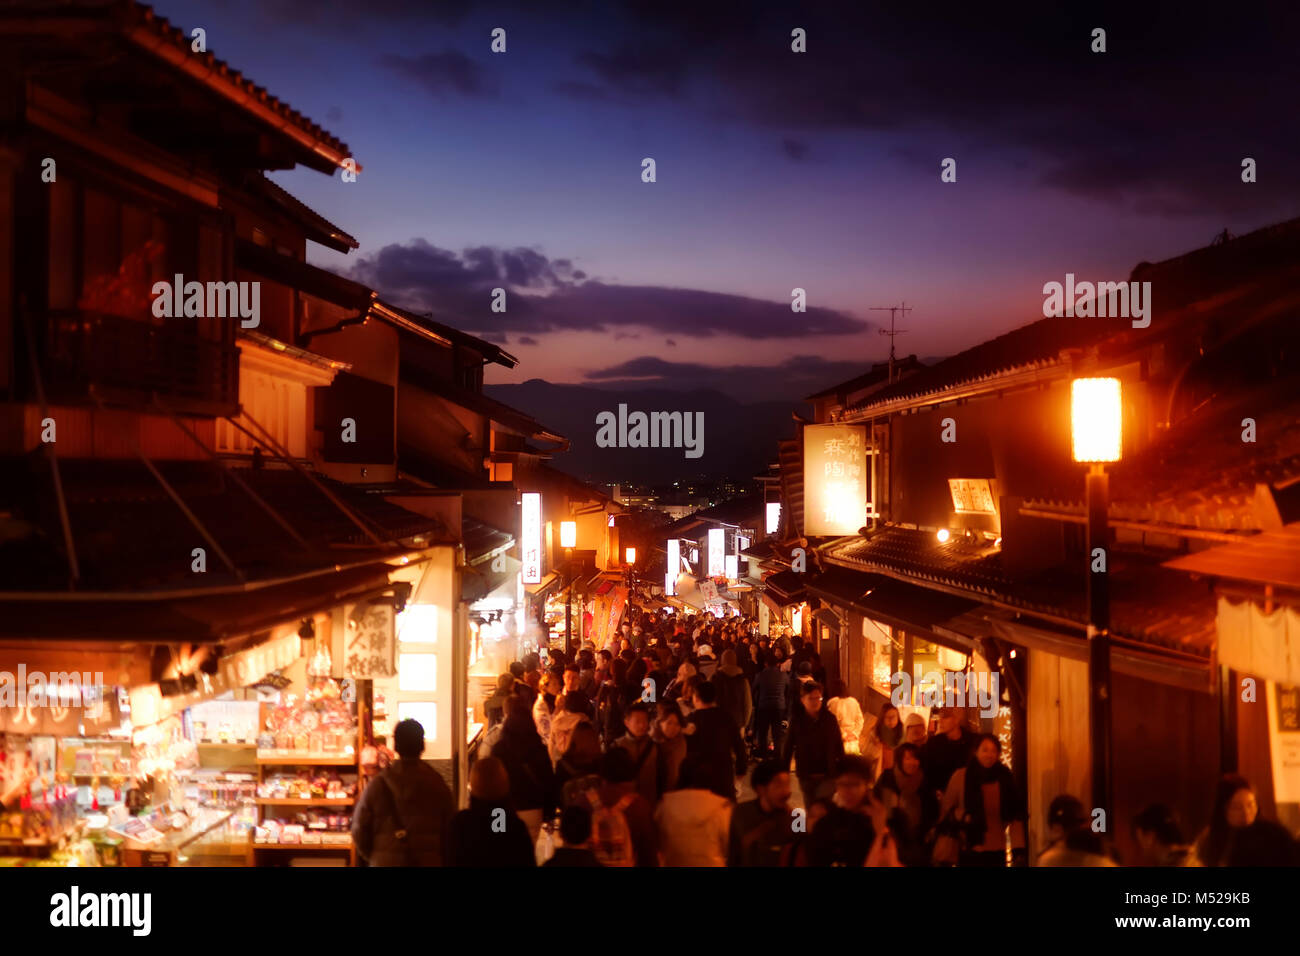 Twilight old Kyoto city scenery at Matsubara dori street in fall with brightly lit shops and street lights, crowded - Stock Image